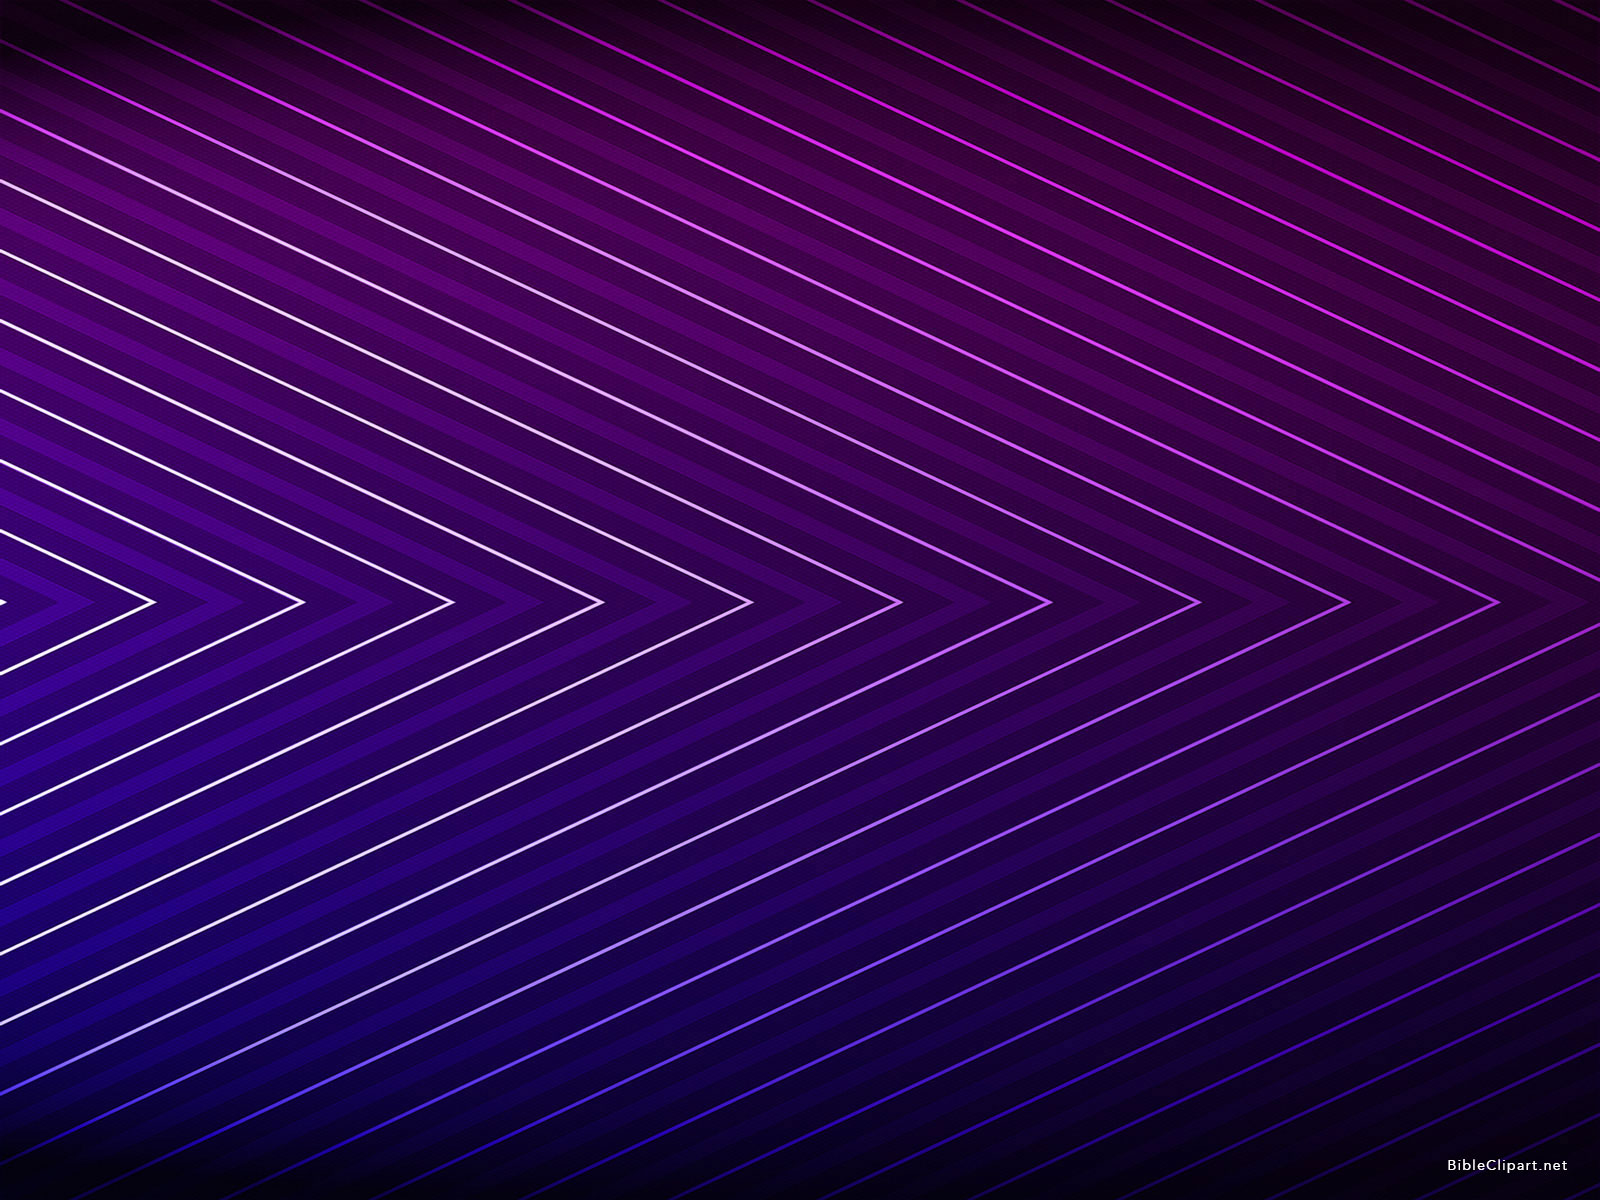 Download Purple Stripe Background This Stunning Hd Background Image